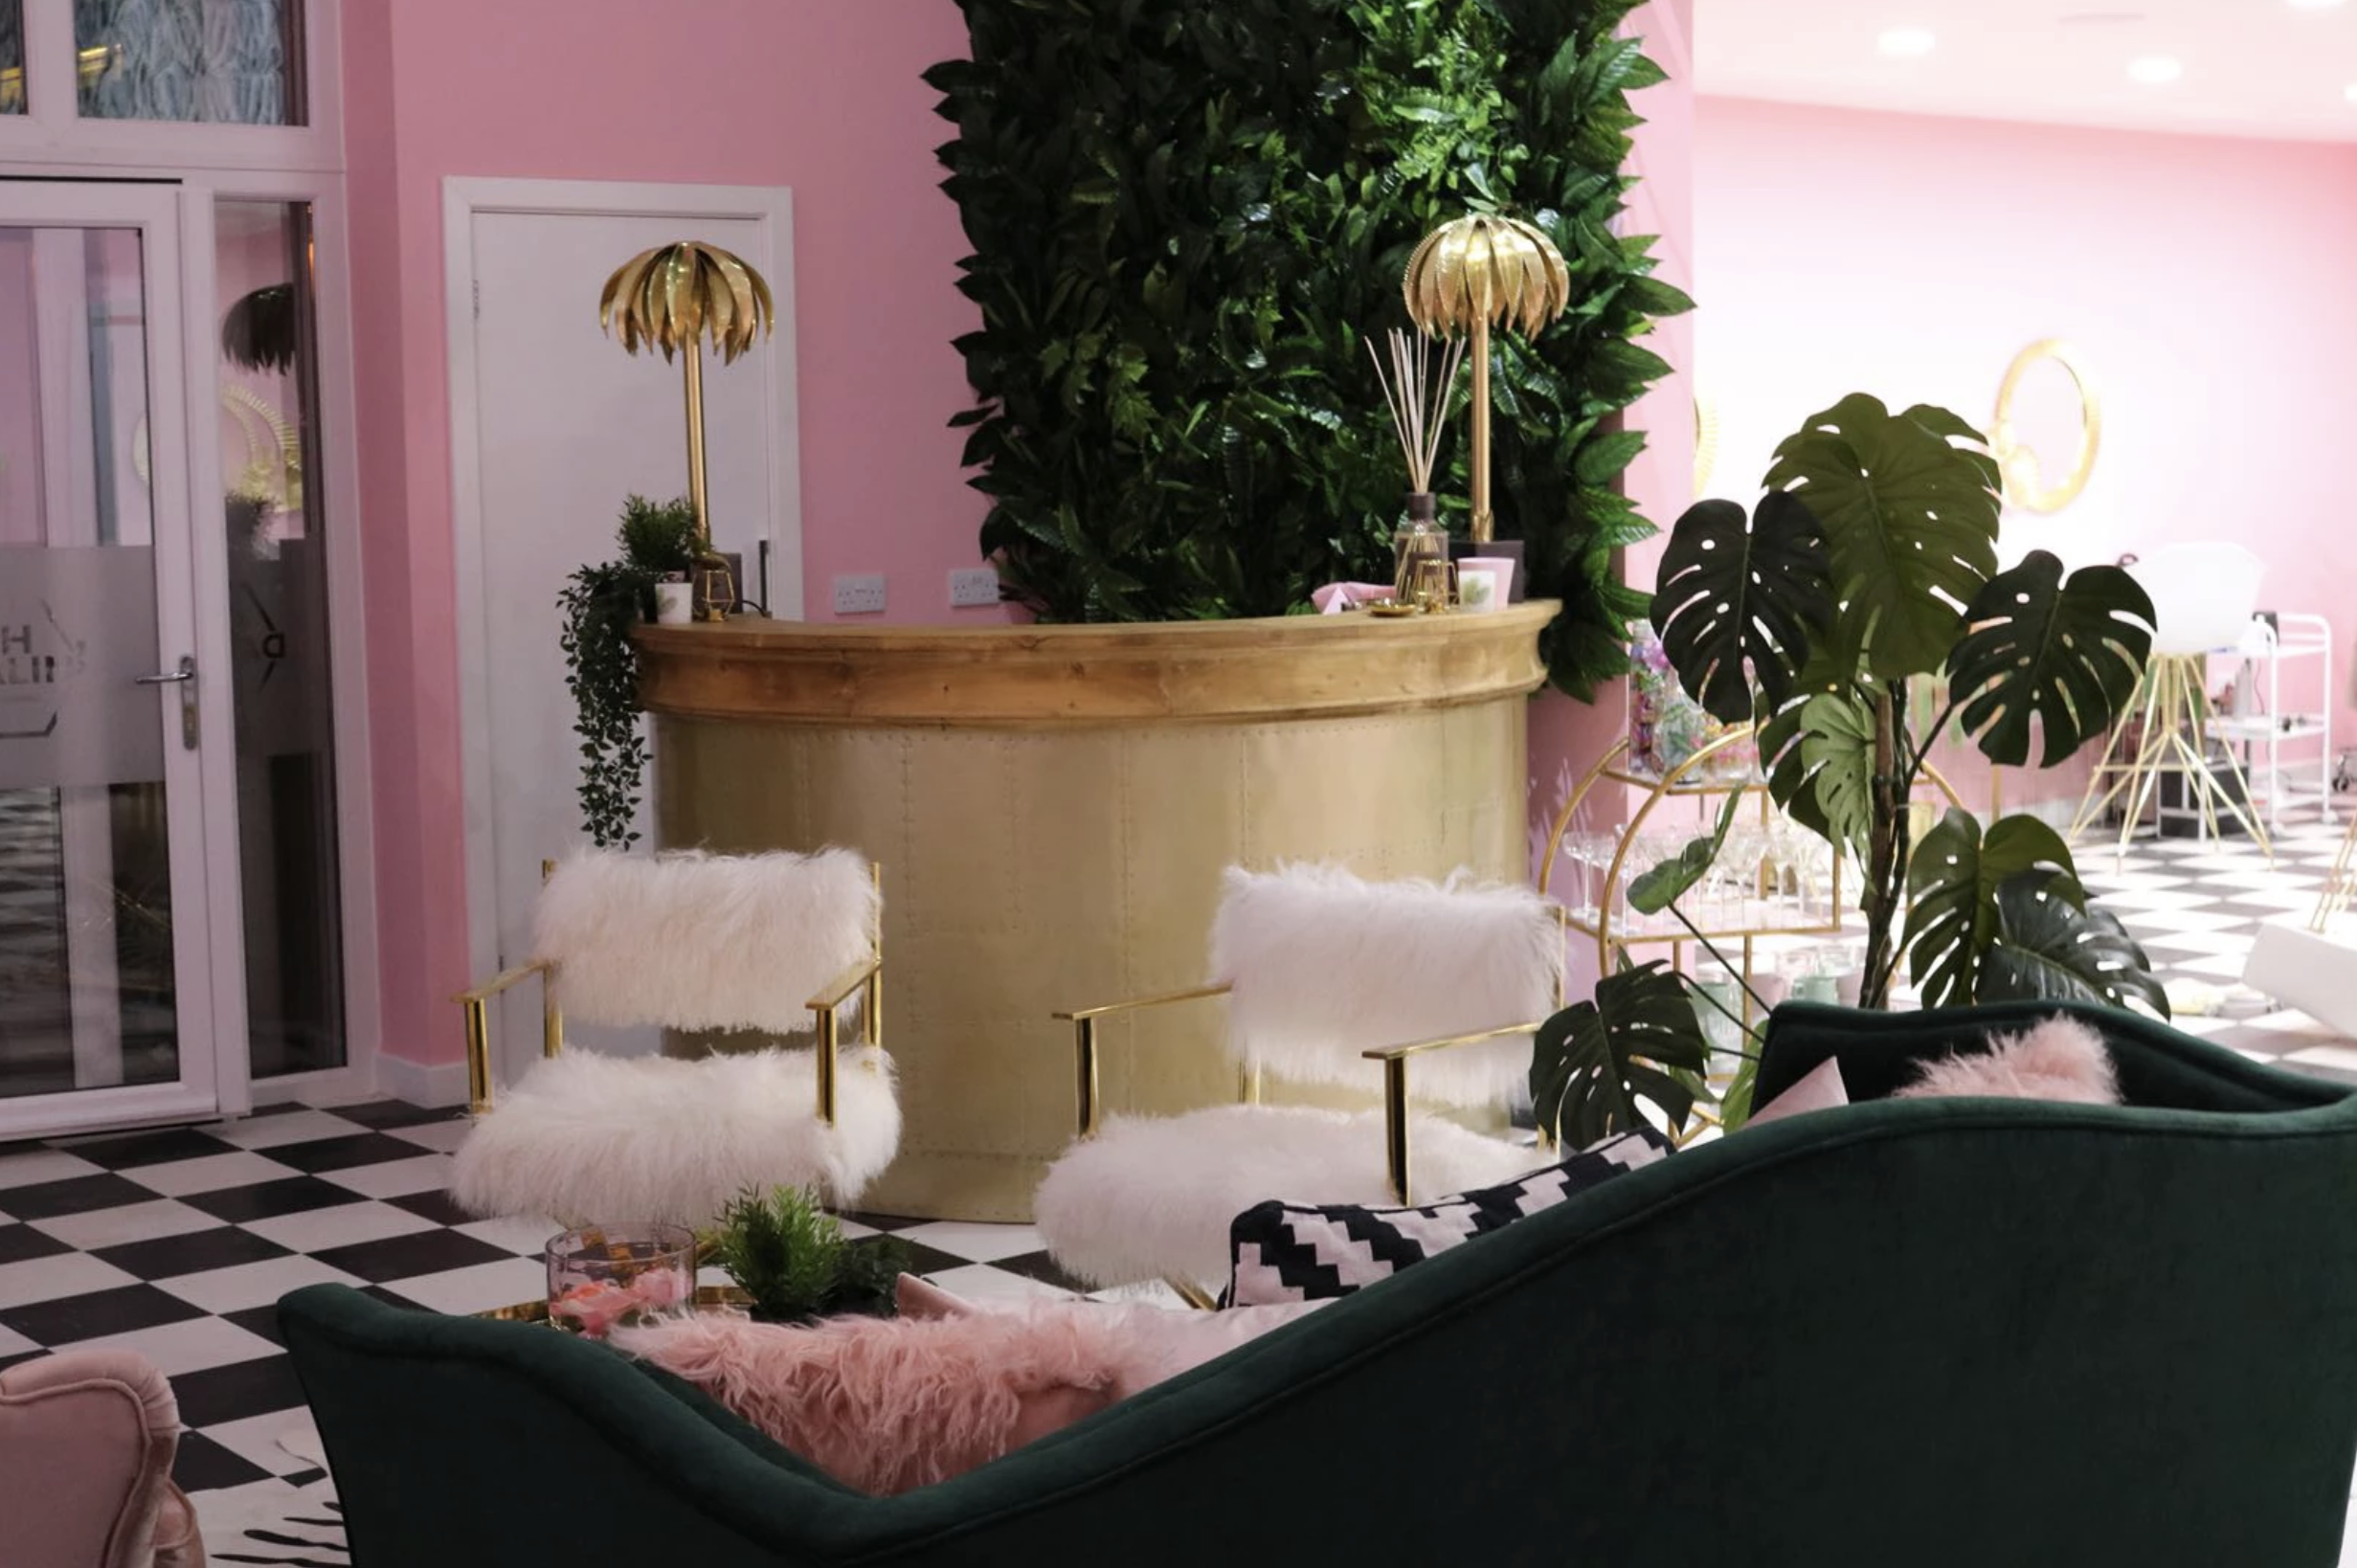 Oh Darlin' - This chic salon and training academy is based in Liverpool, founded by Beauty Educator Cheryl and Makeup artist Kate. The lush interior has a tropical but instagrammable vibe thanks to the contrasting green and pink interior elements with luxurious gold aspects.